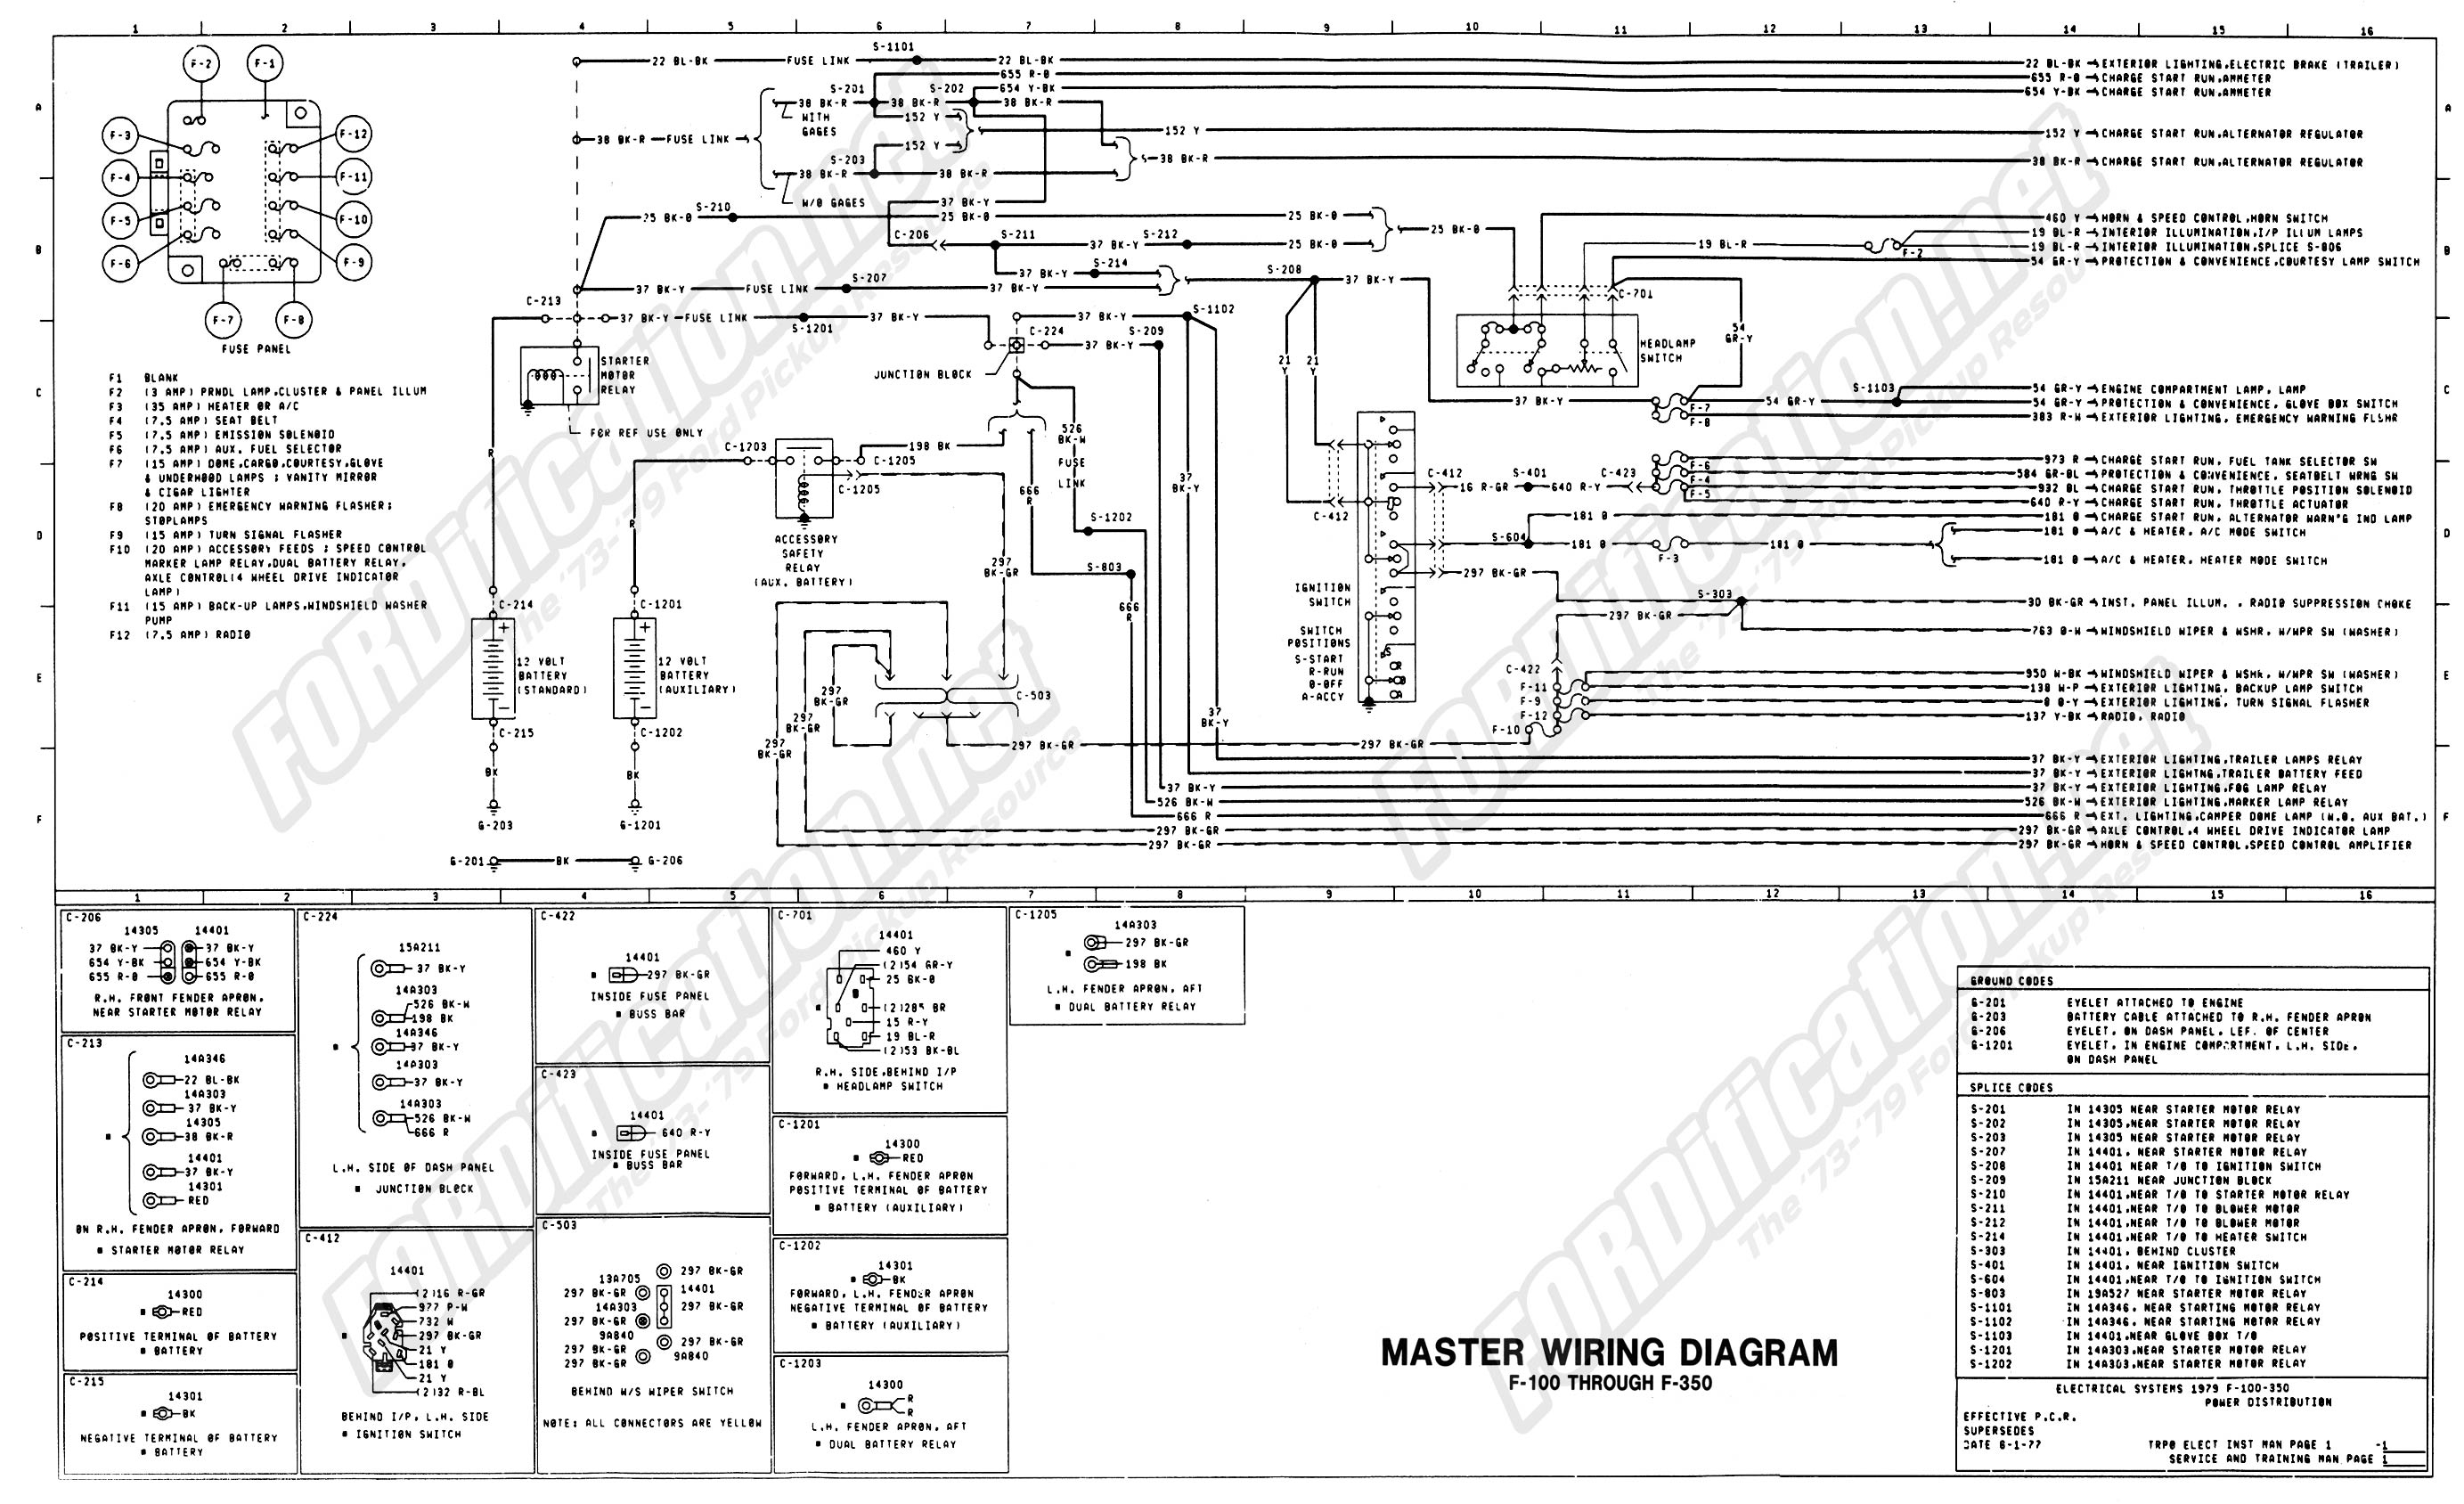 International Wiring Diagram Lights